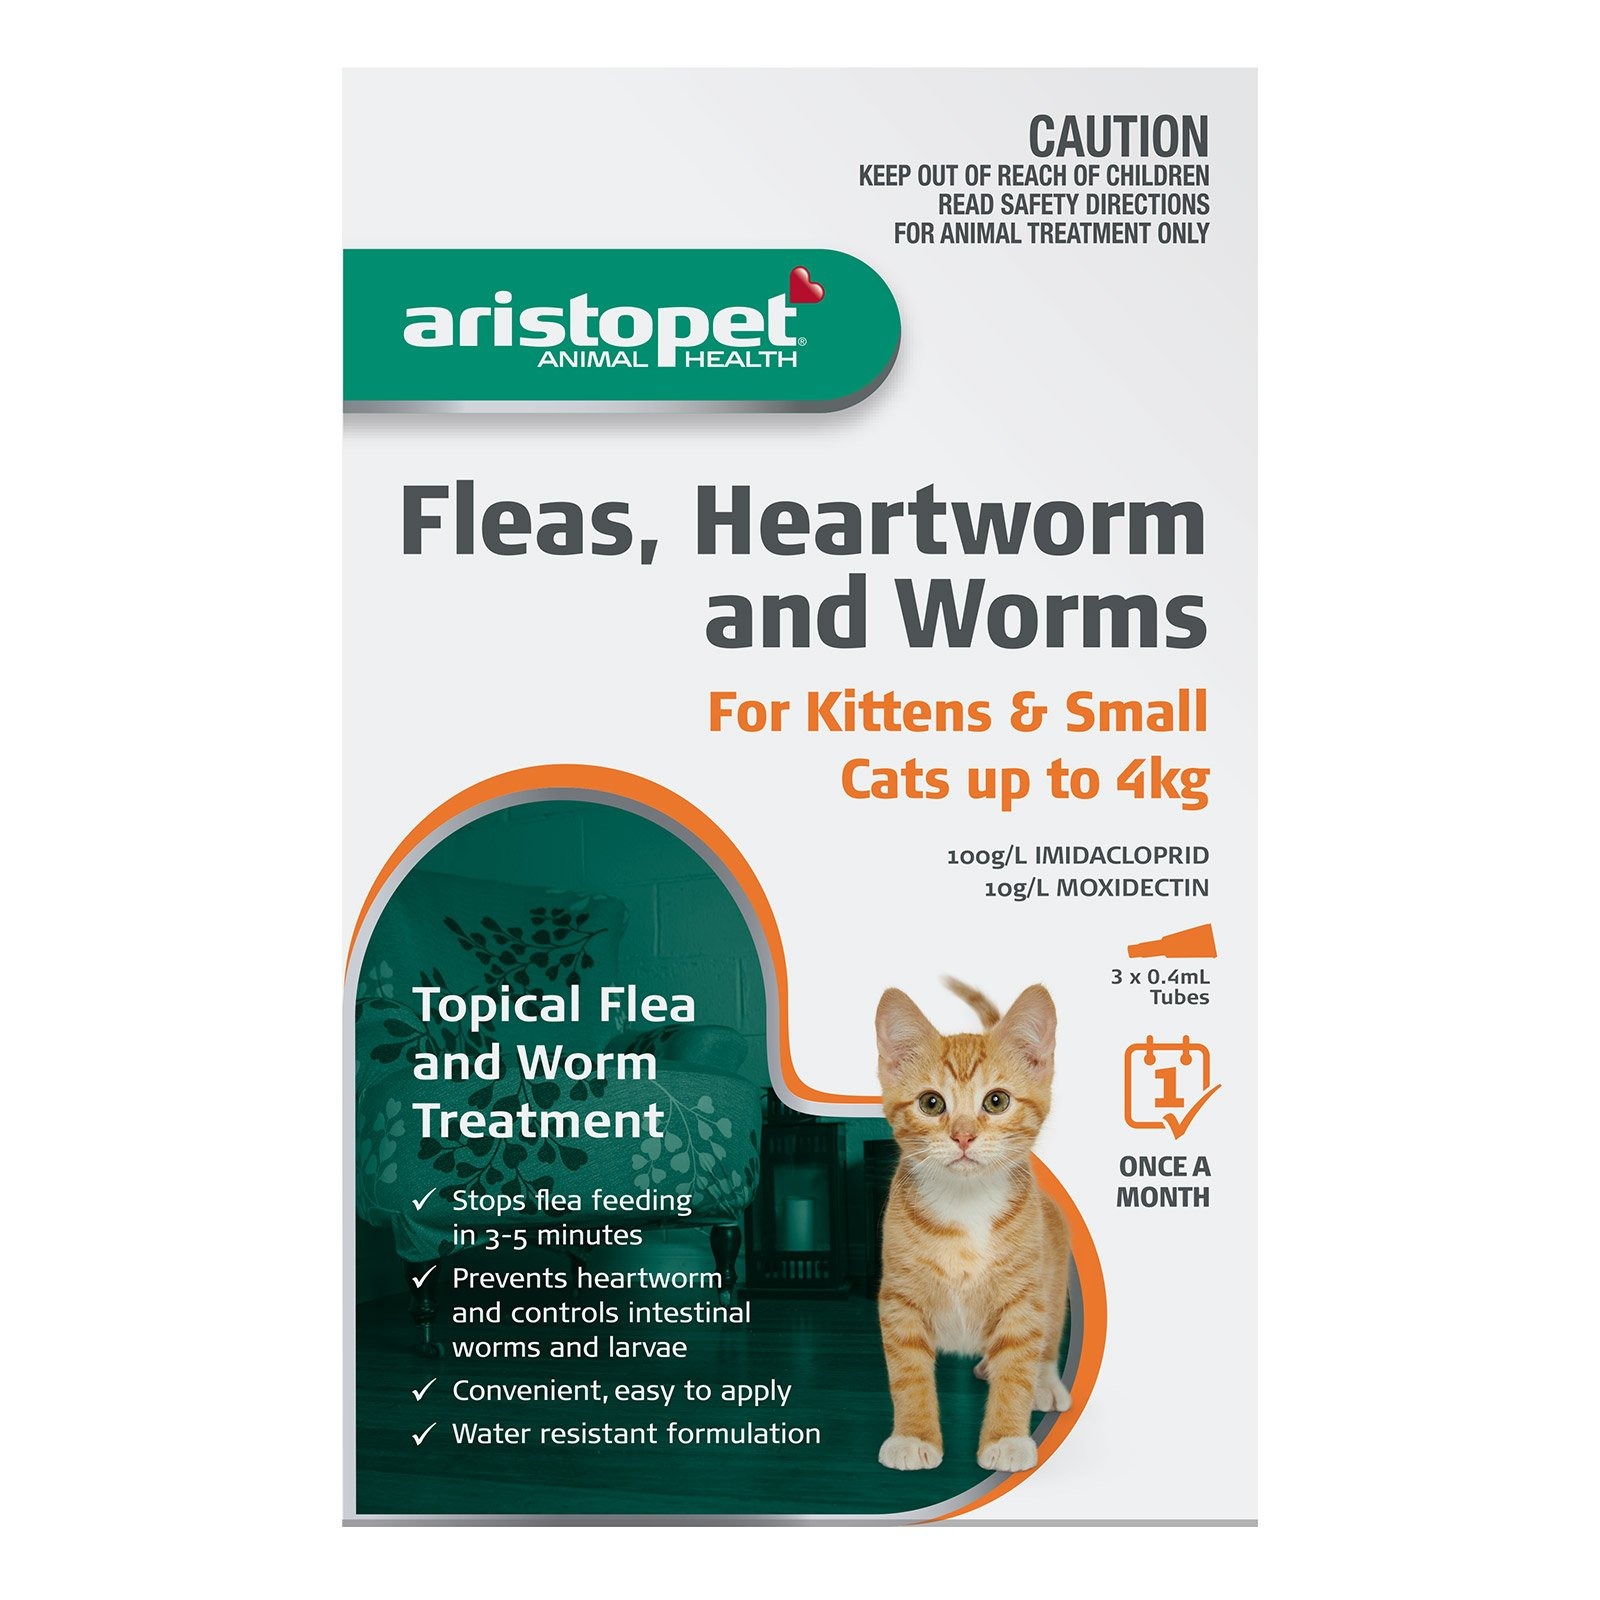 Aristopet Spot Treatment Kitten/Cat